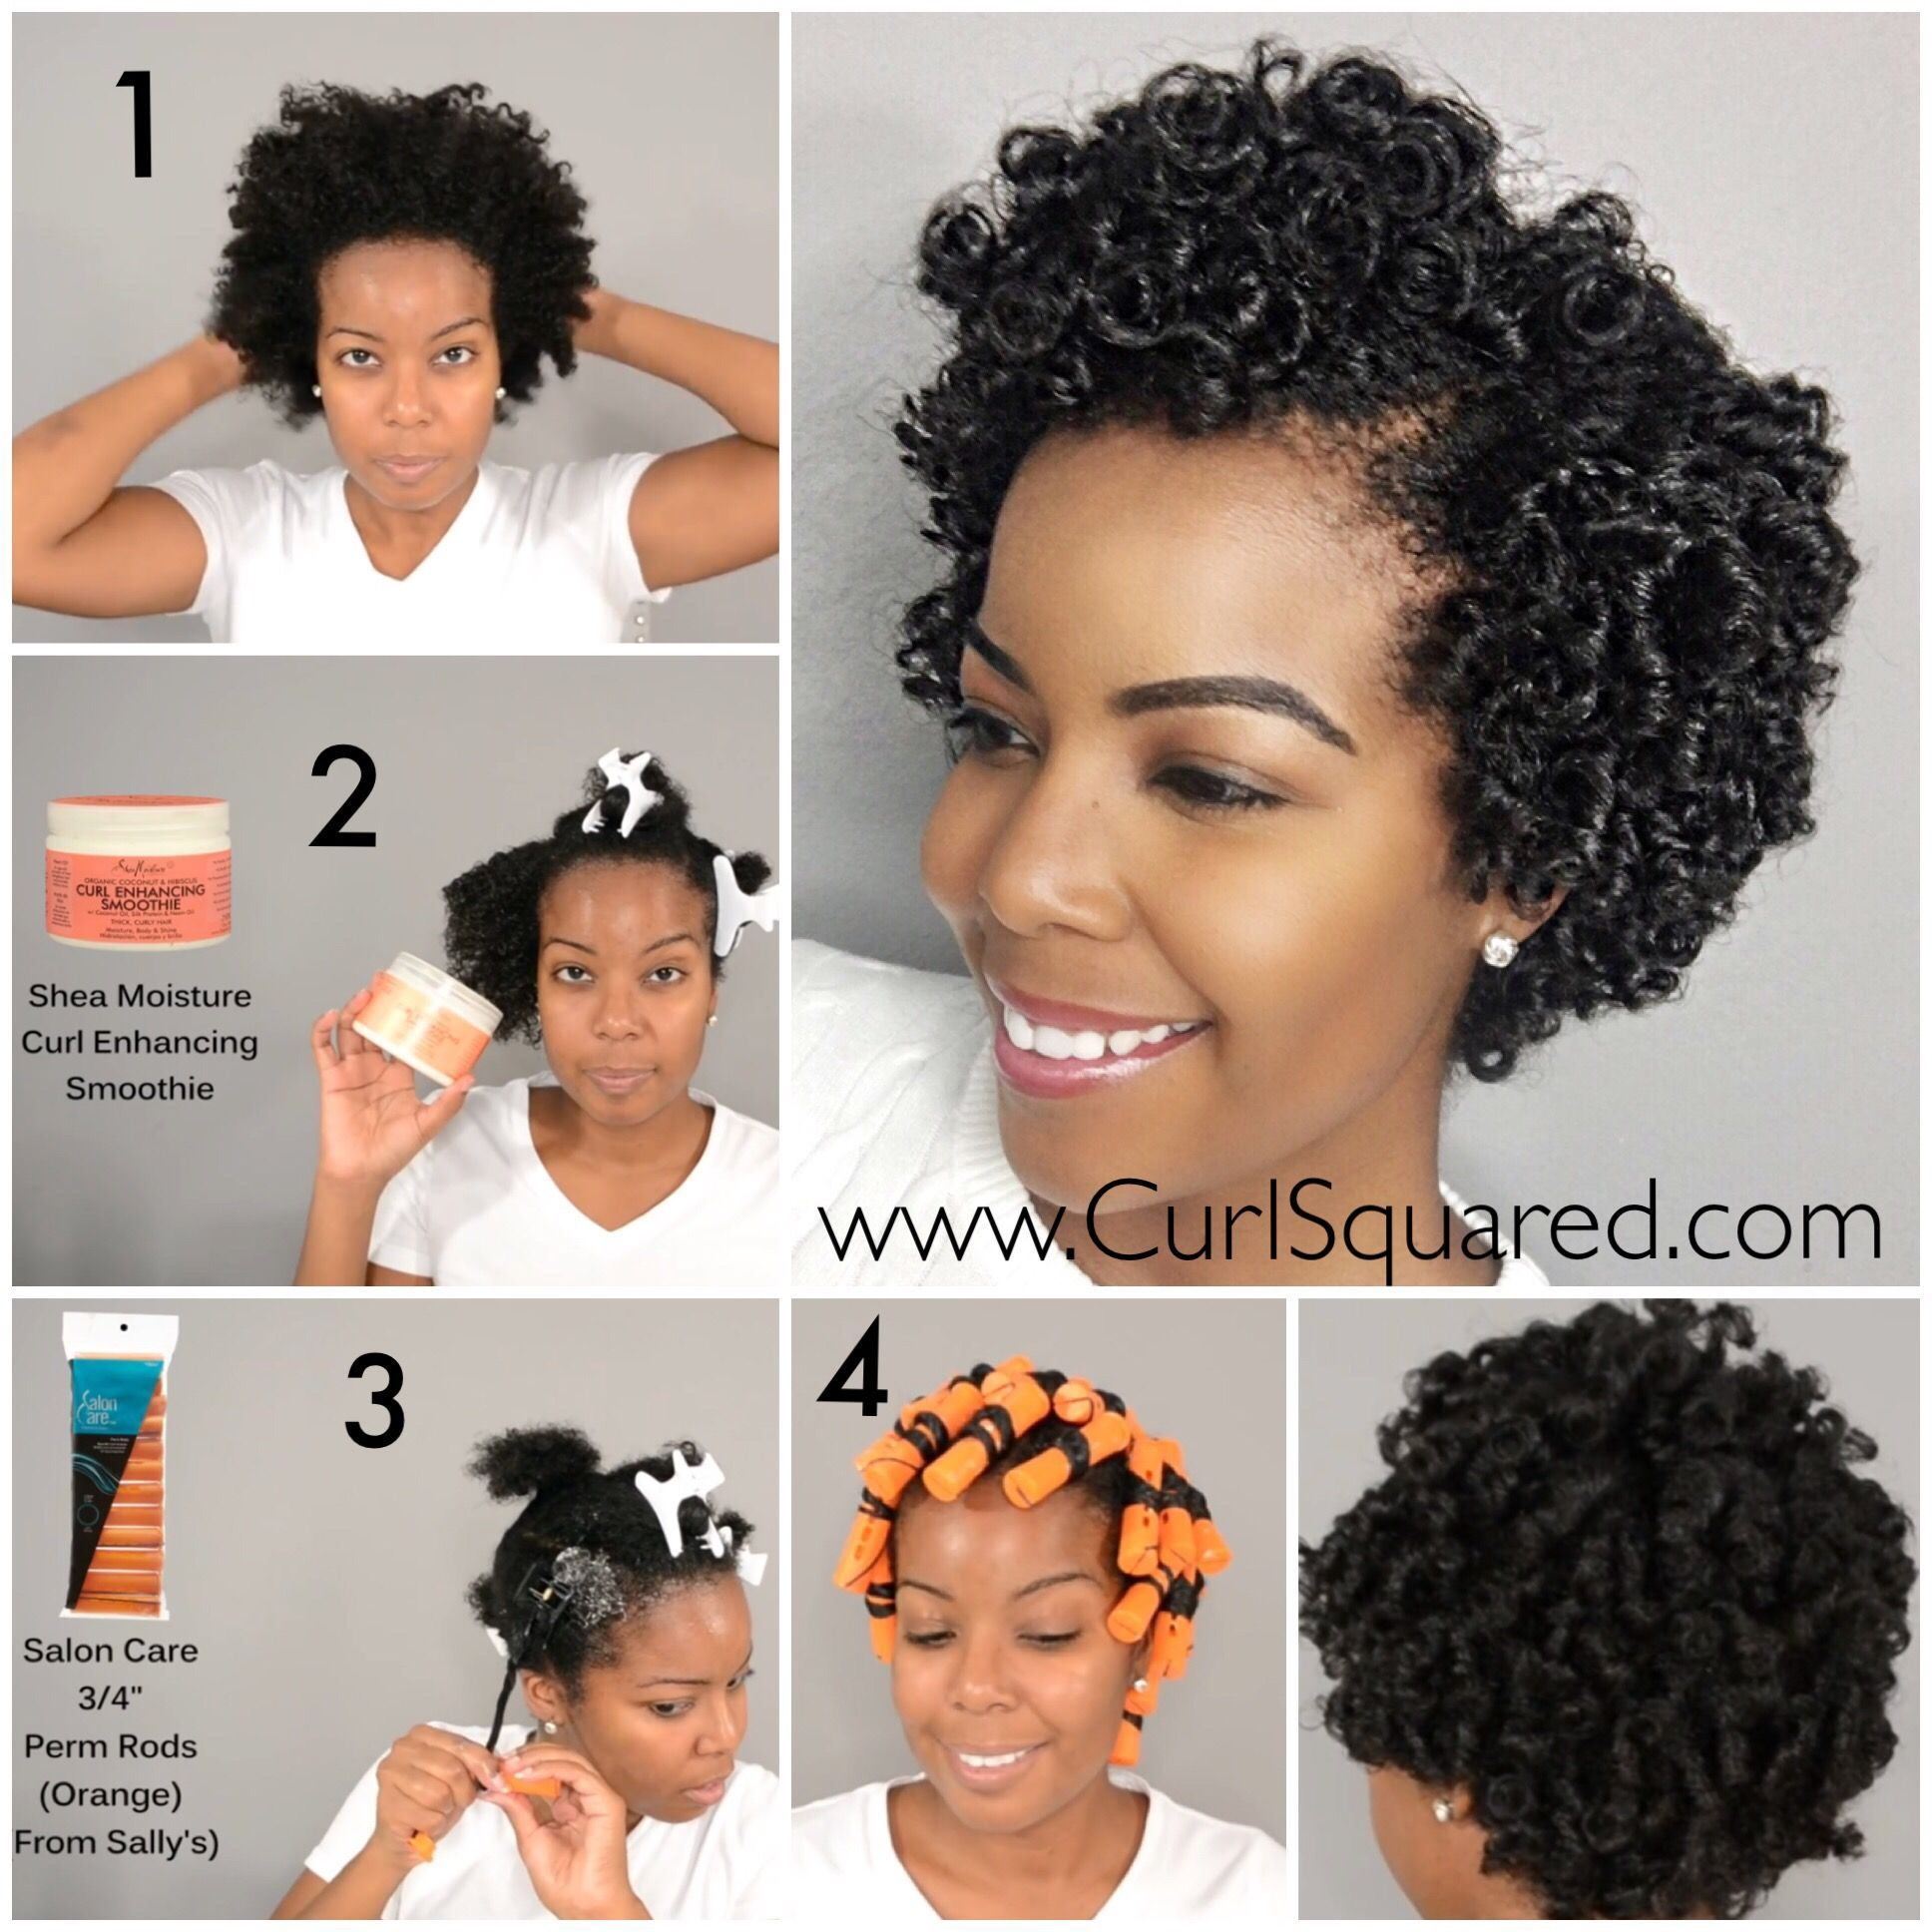 defined perm rod set on short curly natural hair style